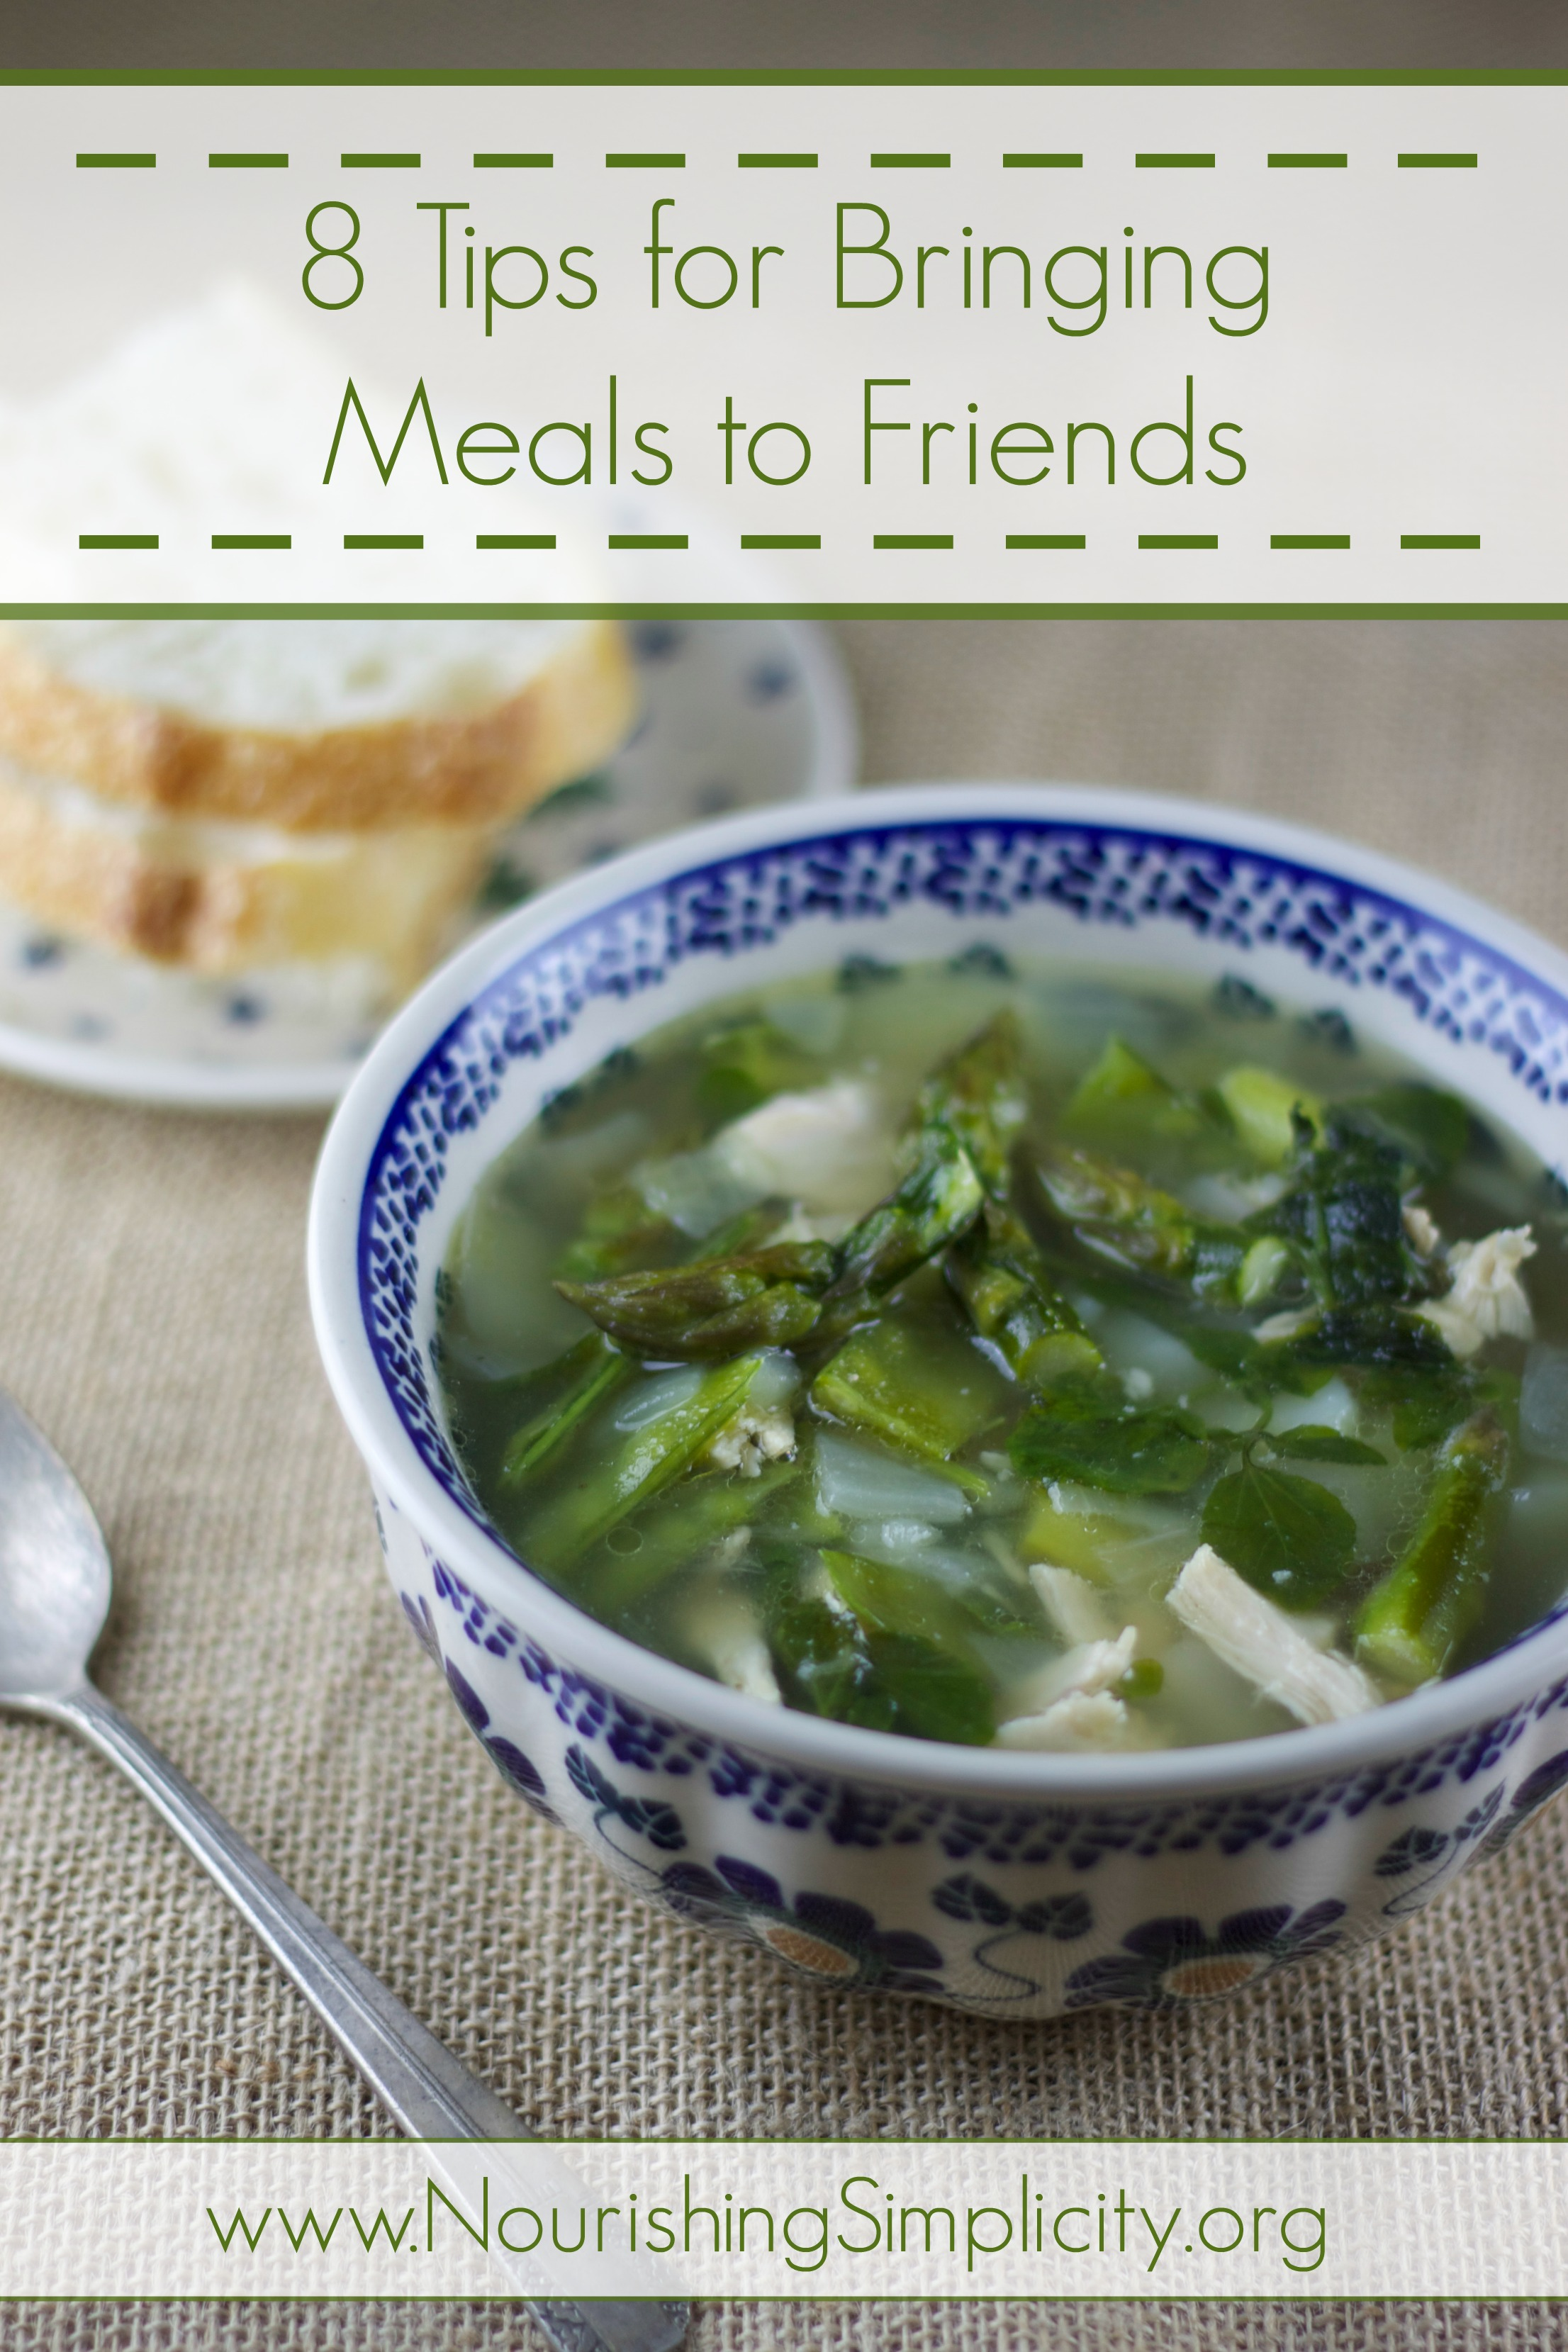 8 Tips for Bringing Meals to Friends